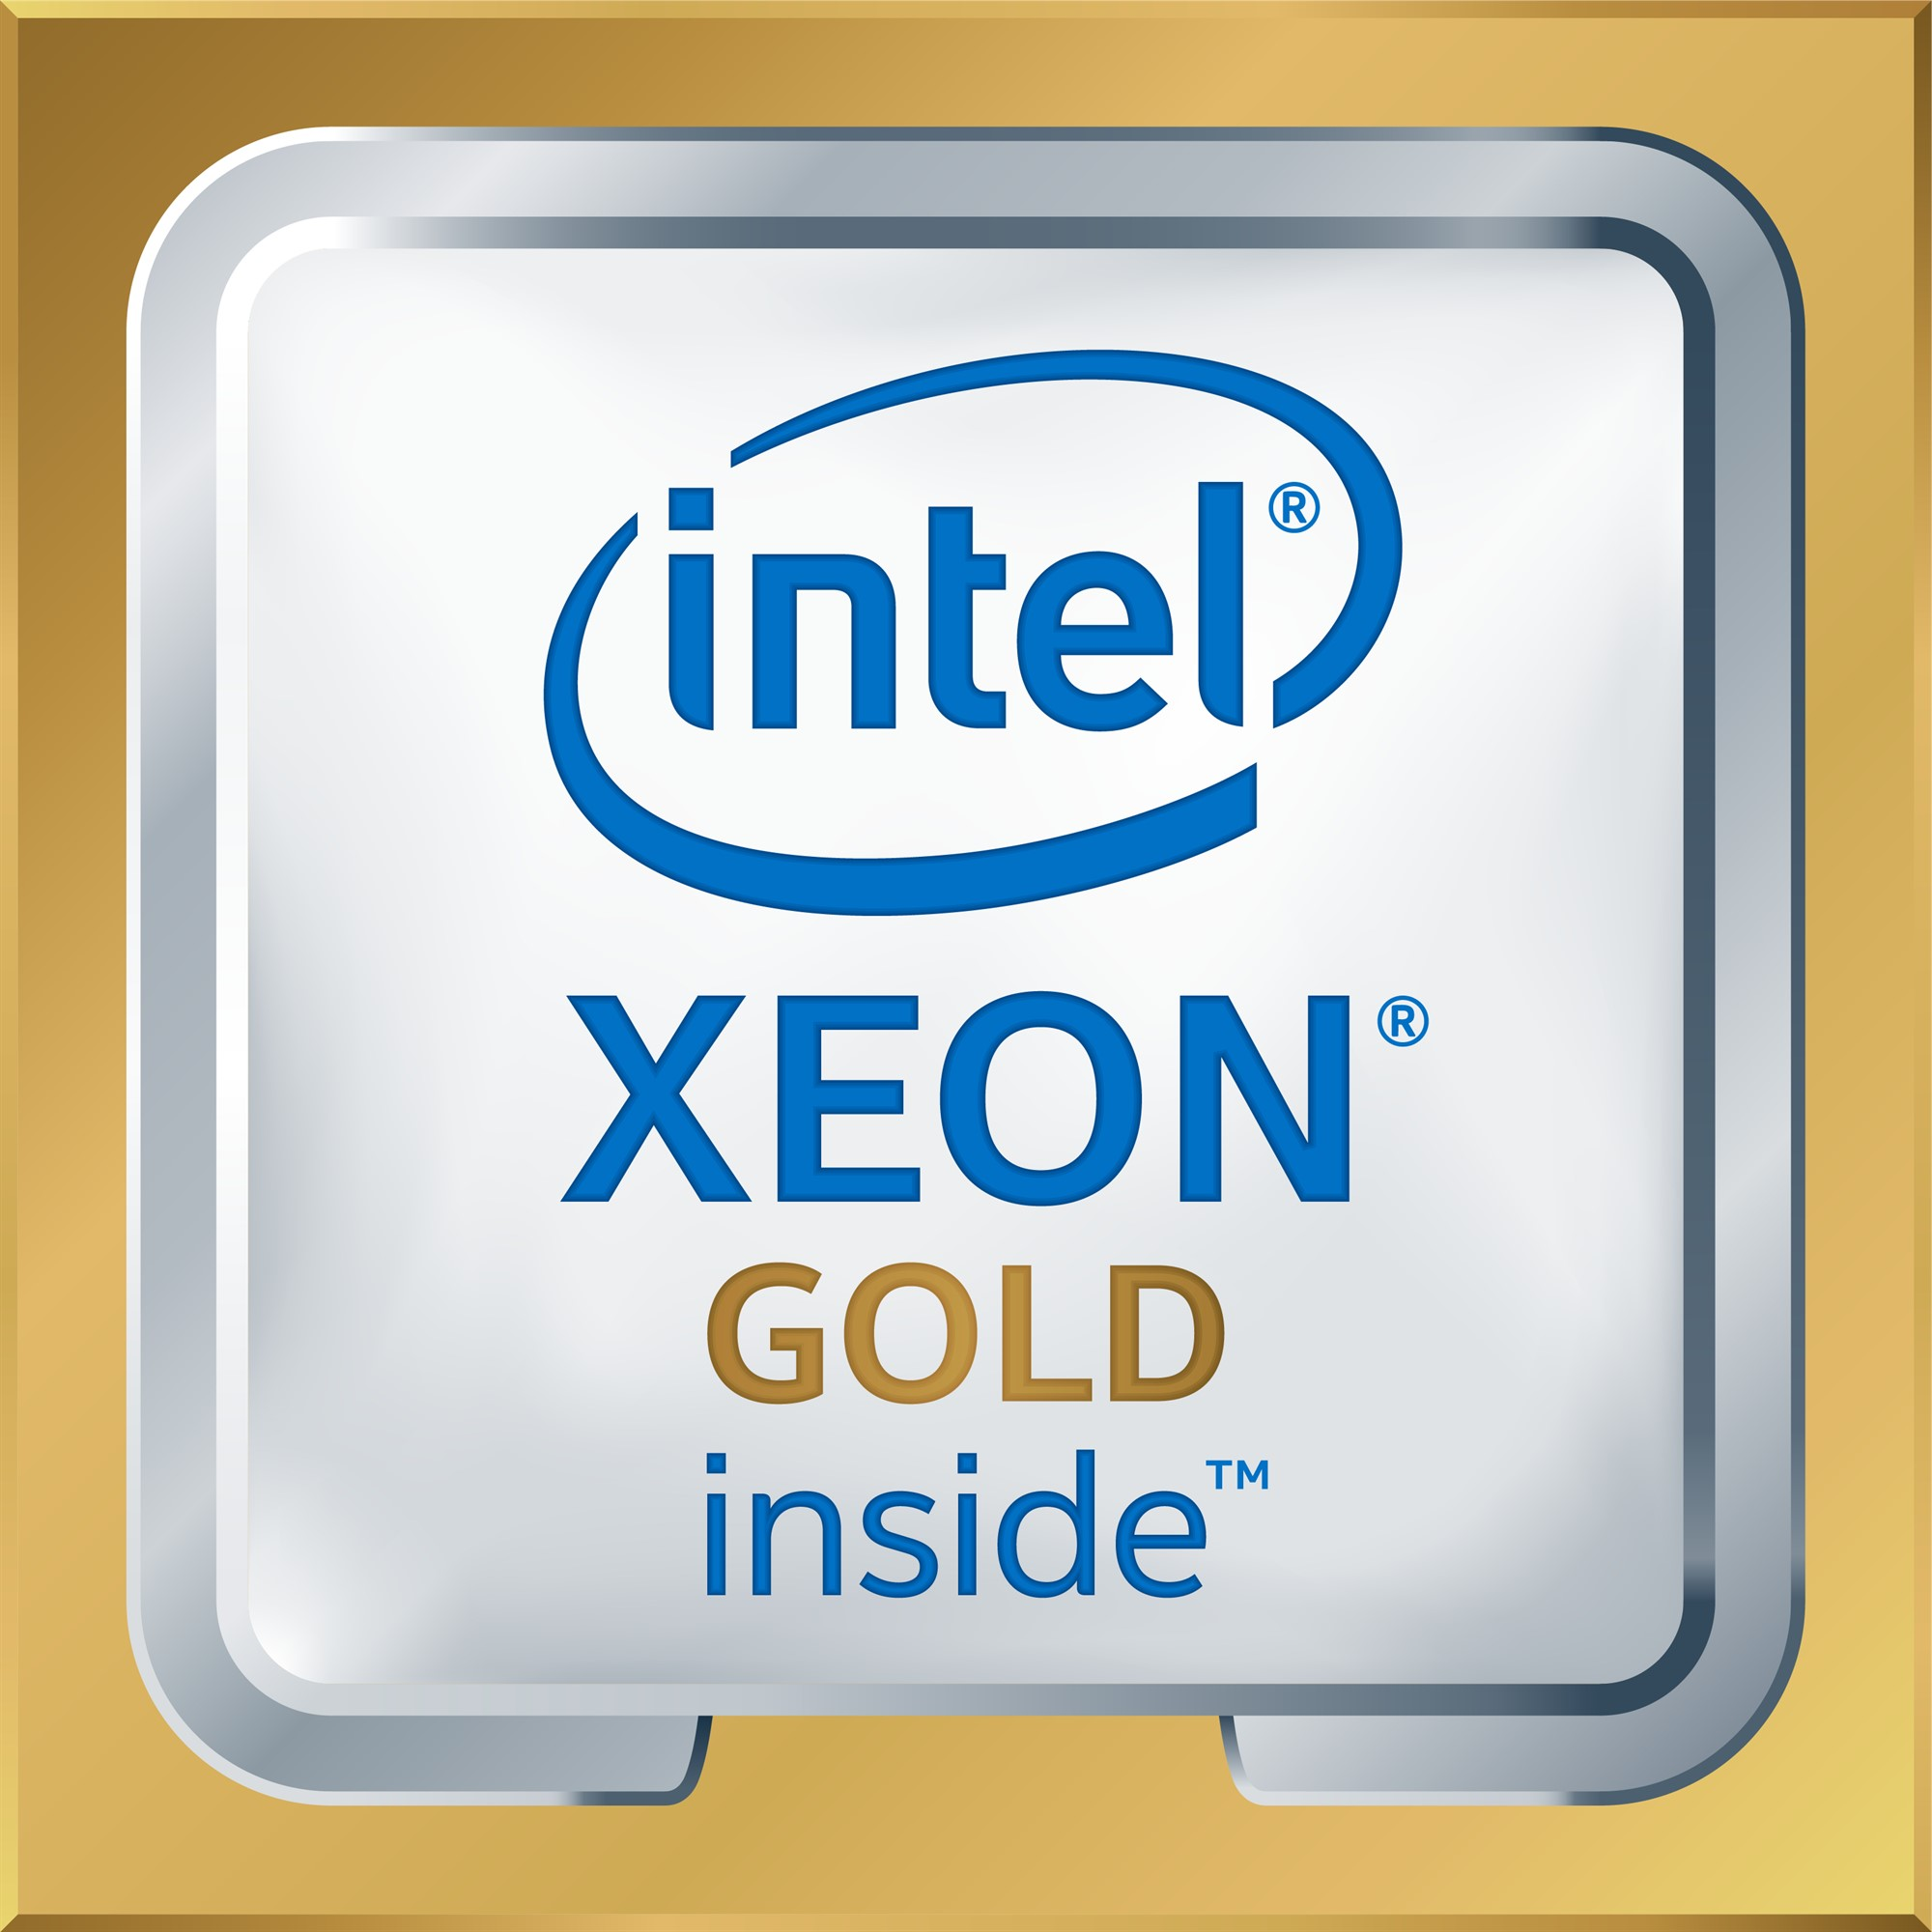 INTEL XEON GOLD 6148 PROCESSOR (27.5M CACHE, 2.40 GHZ) 2.40GHZ 27.5MB L3